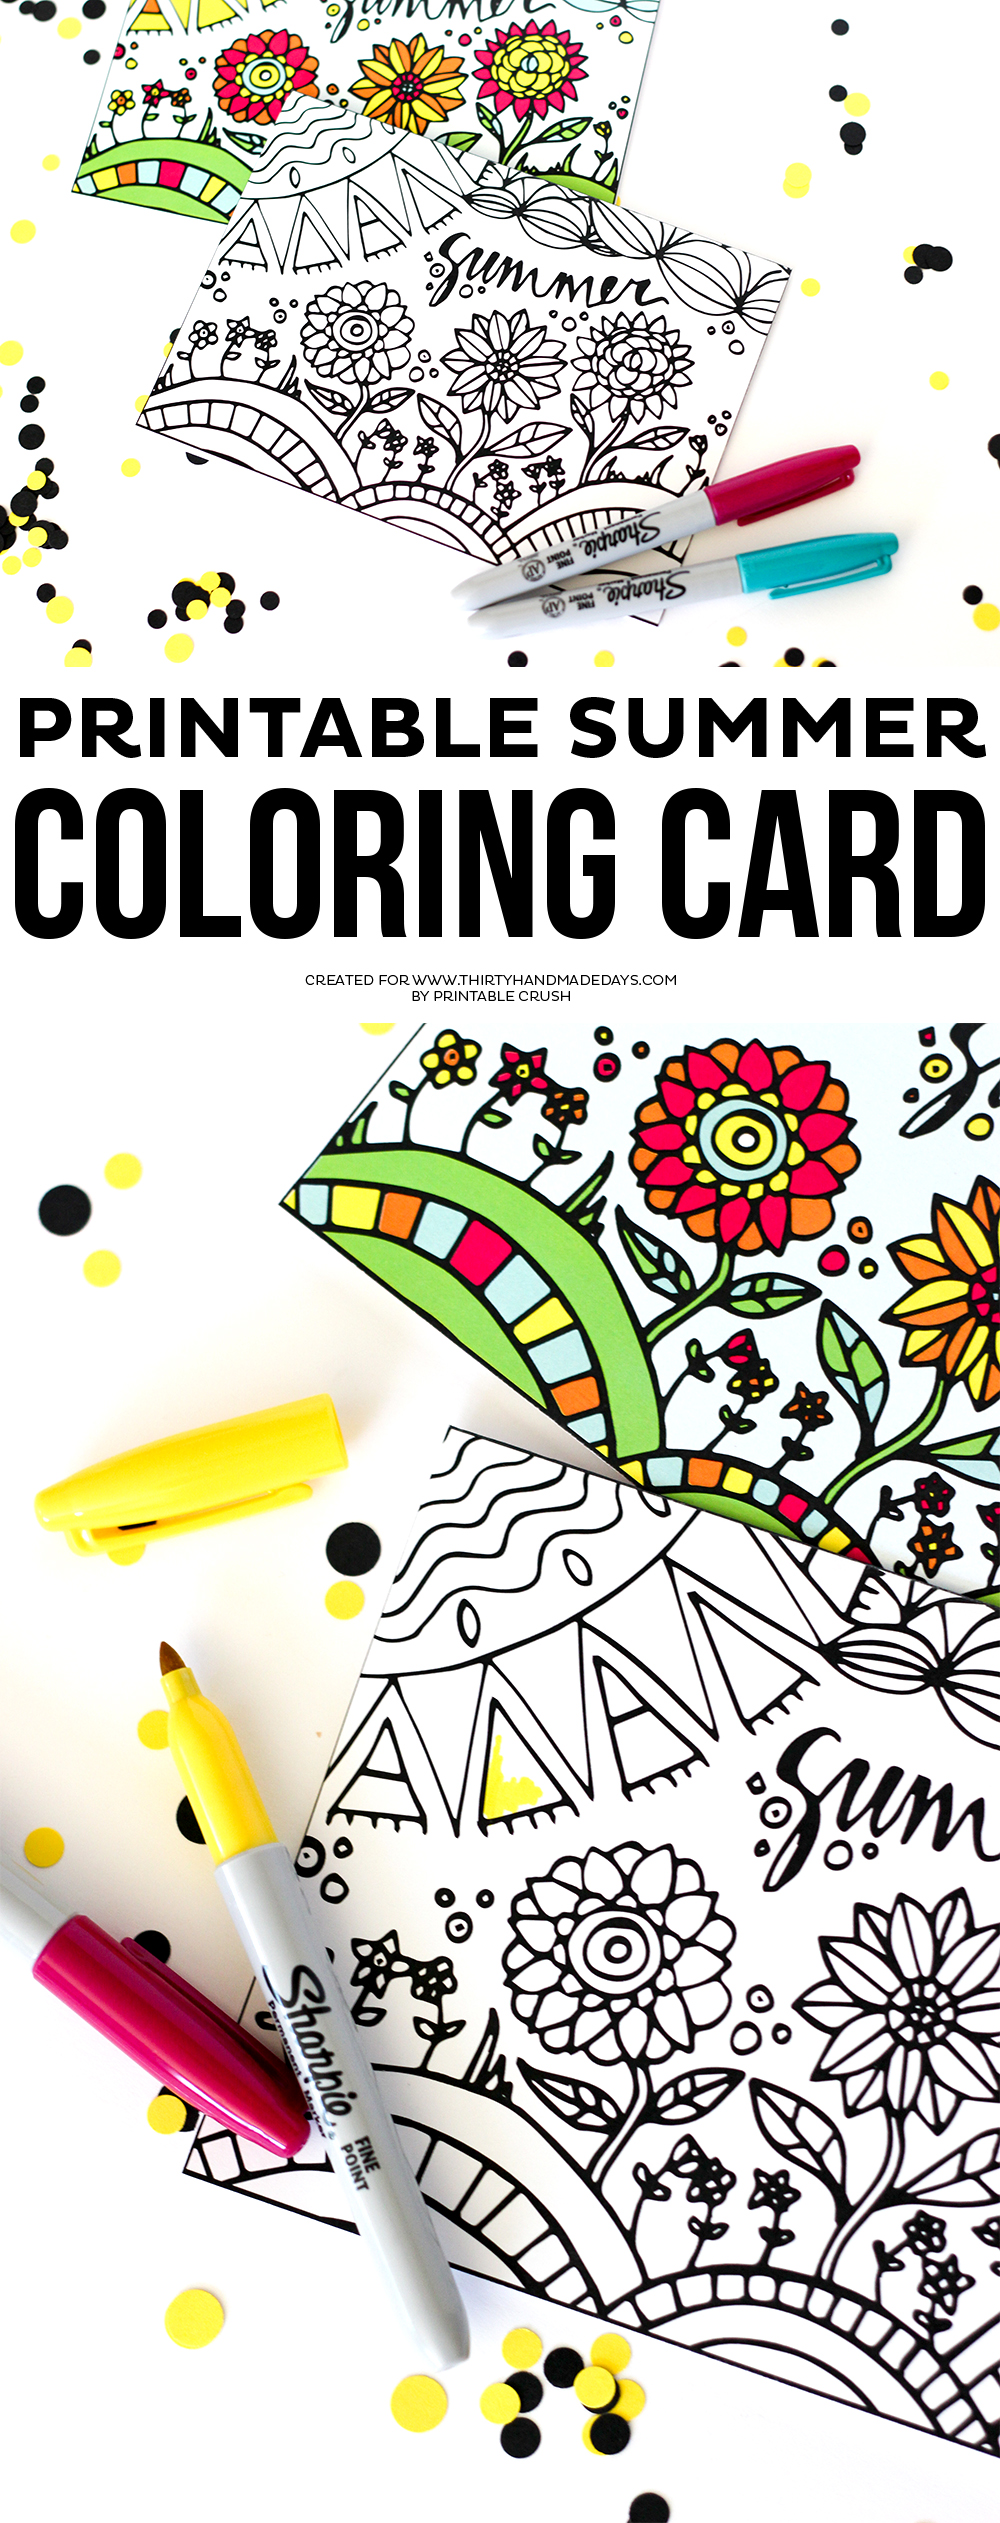 This Summer Printable Coloring Card is a great way to keep the kids busy over the break!